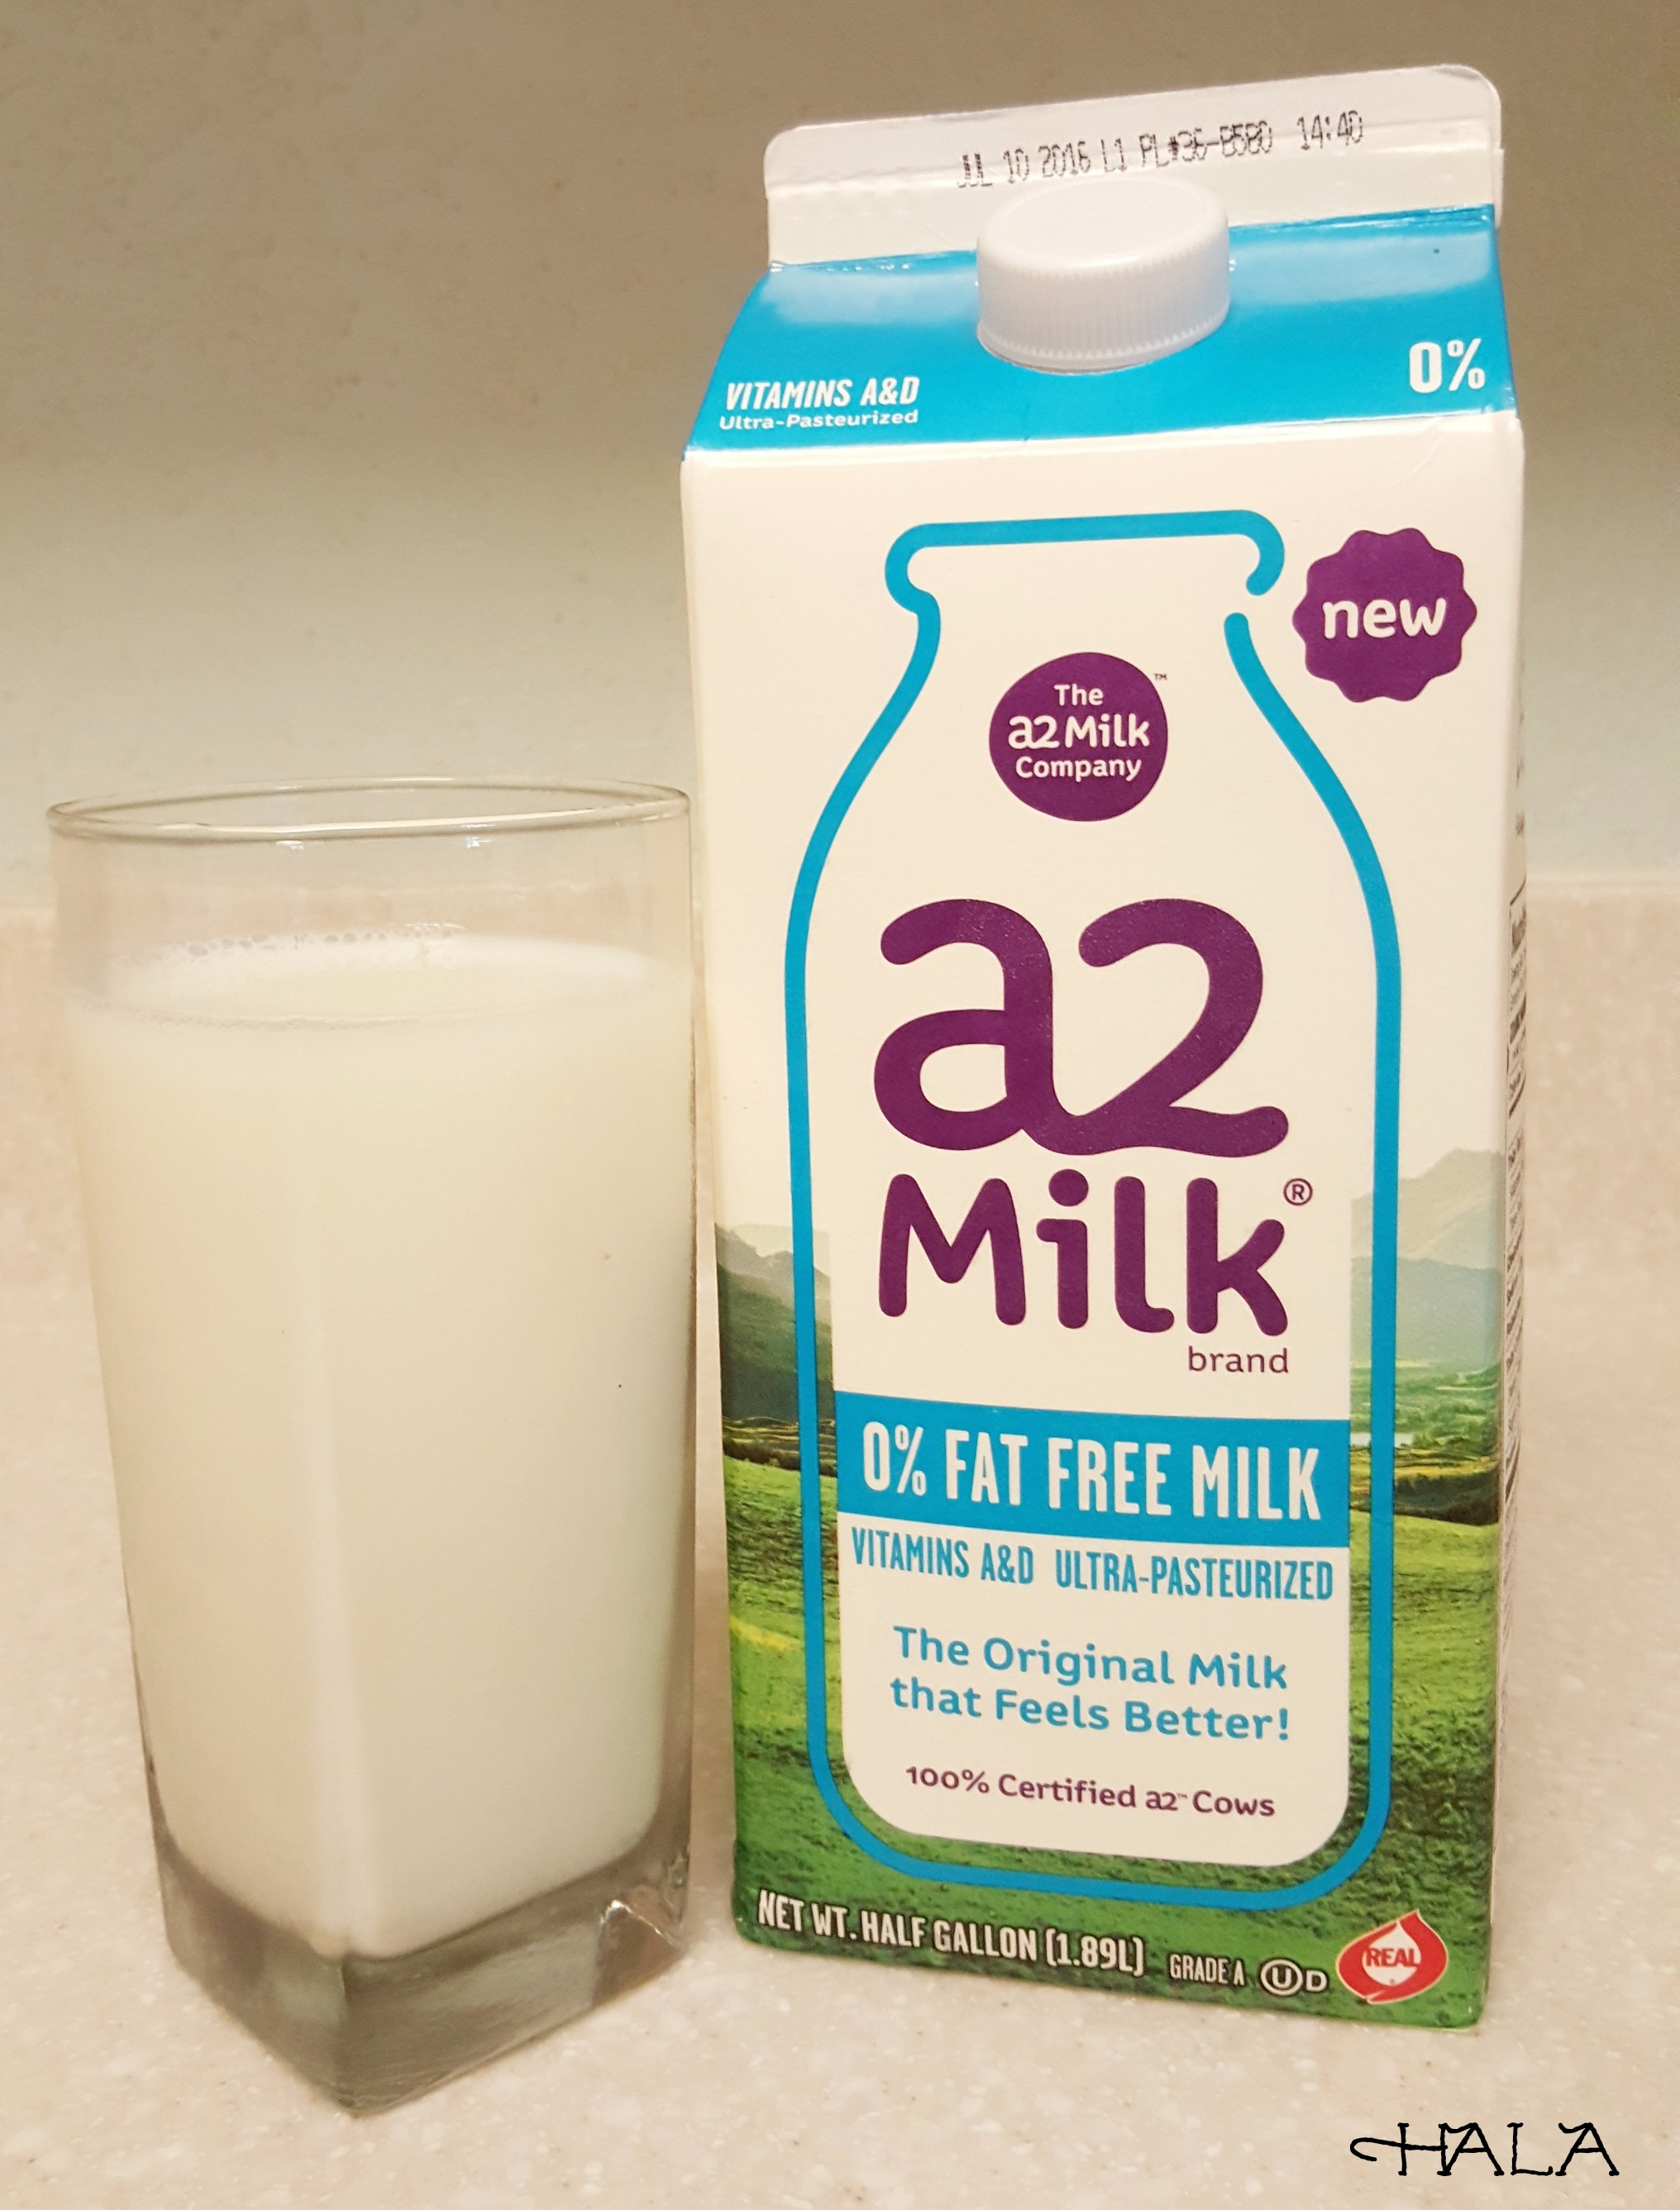 a2-Milk-glass